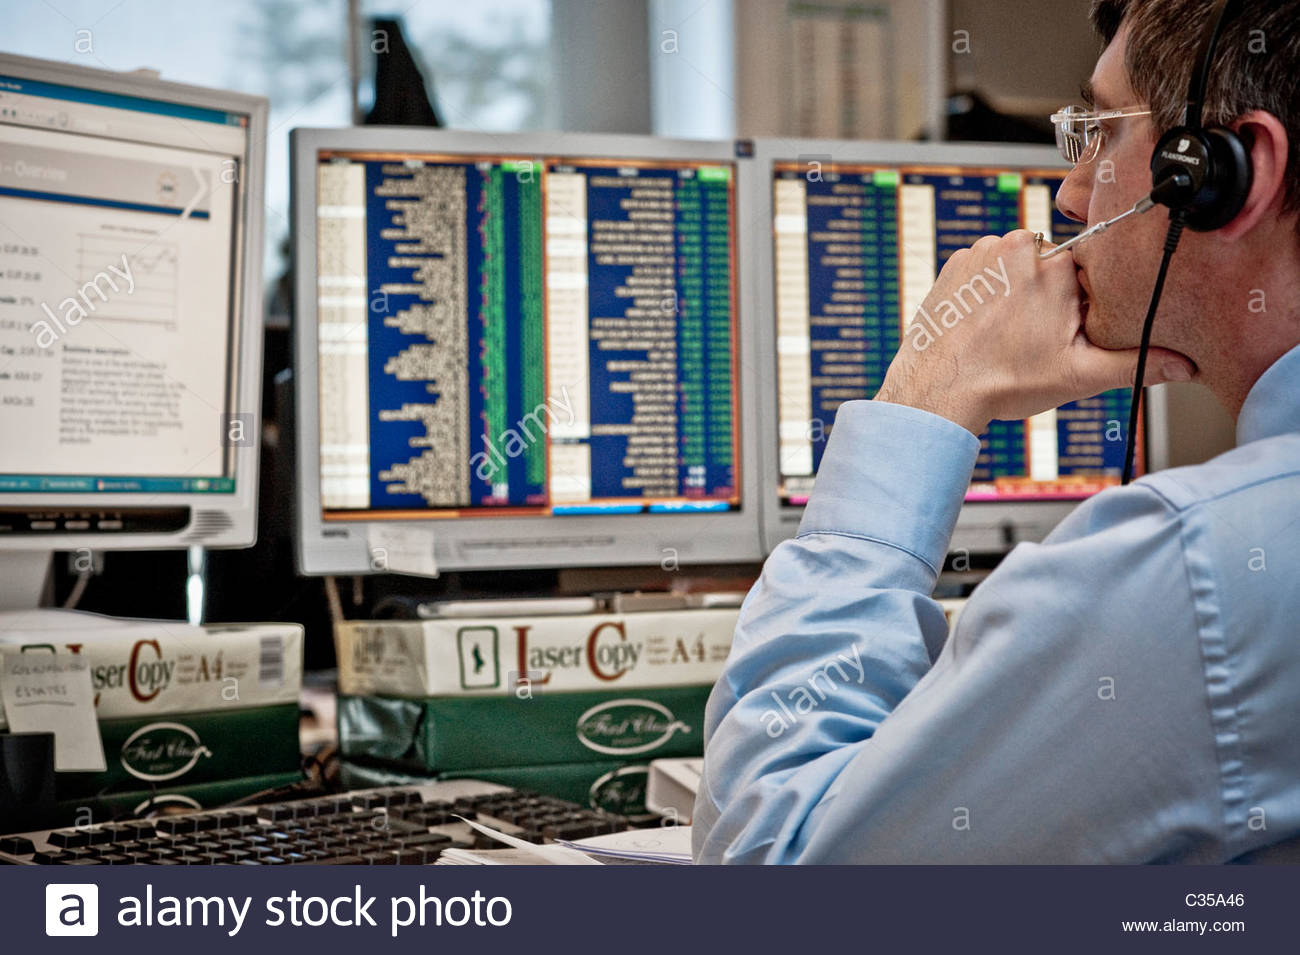 bonds and securities trading floor of the akros bank in milan,italy - Stock Image